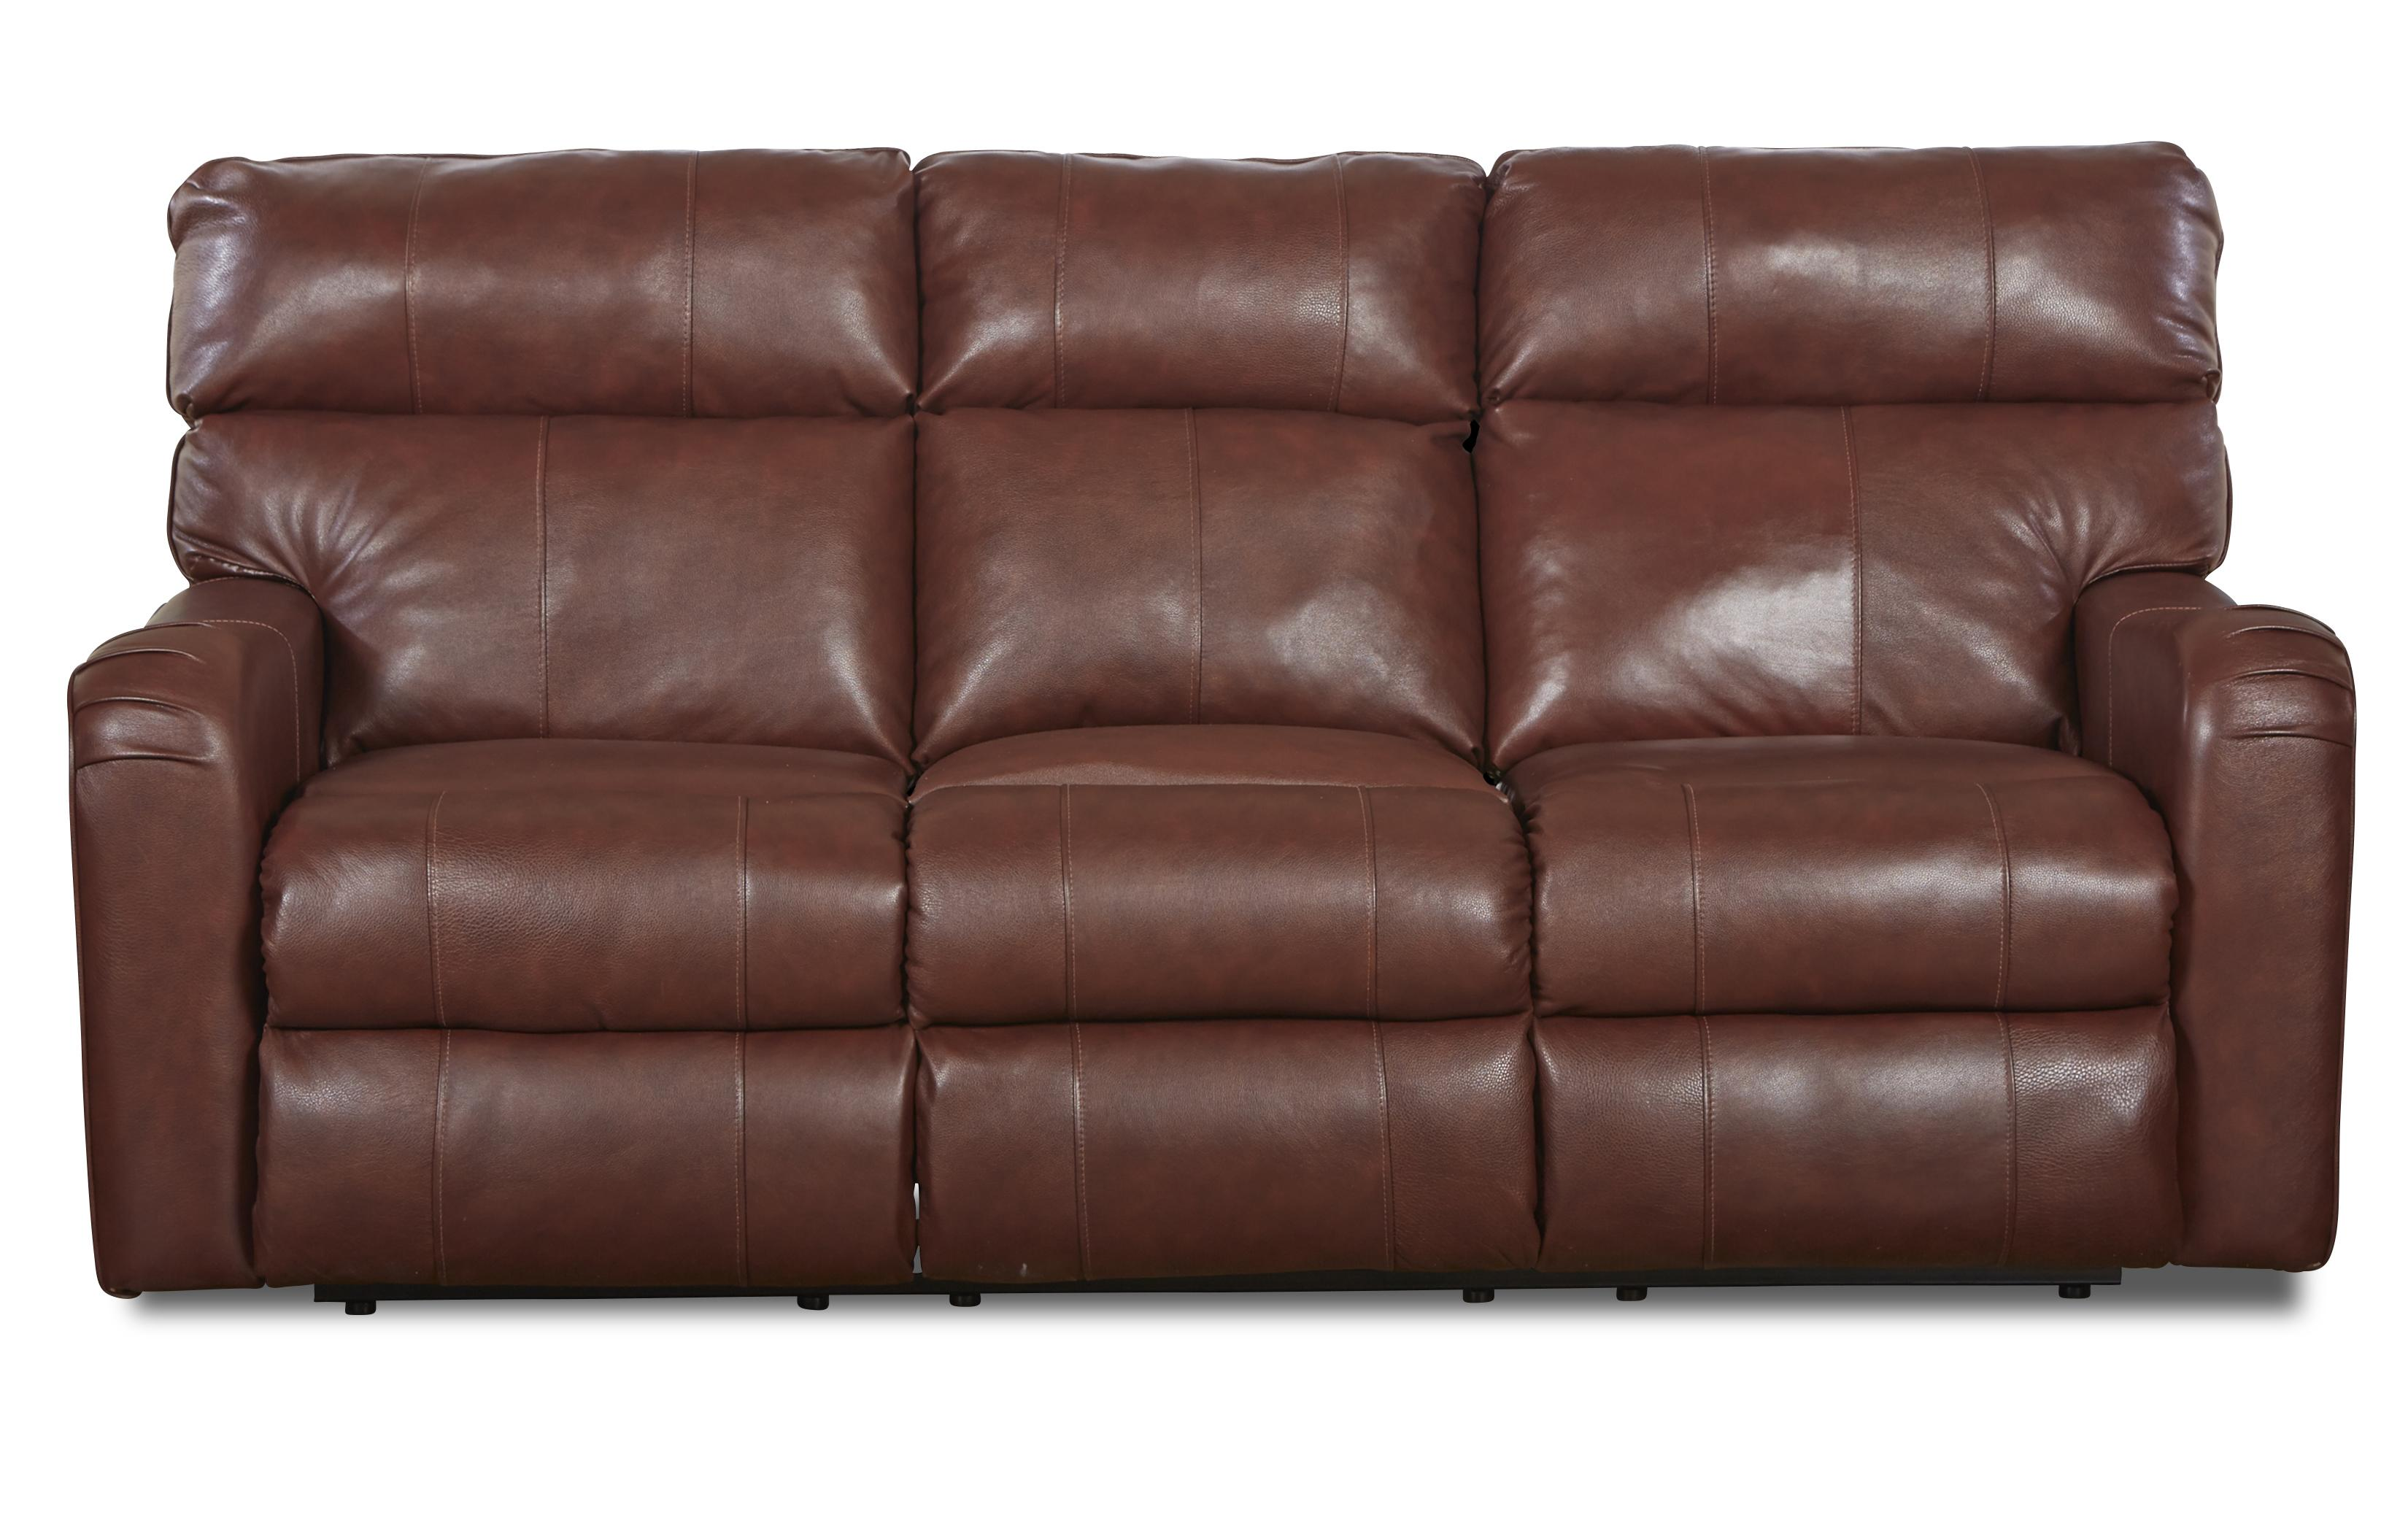 Klaussner Axis 25803 Transitional Reclining Sofa - Item Number: LV25803 RS